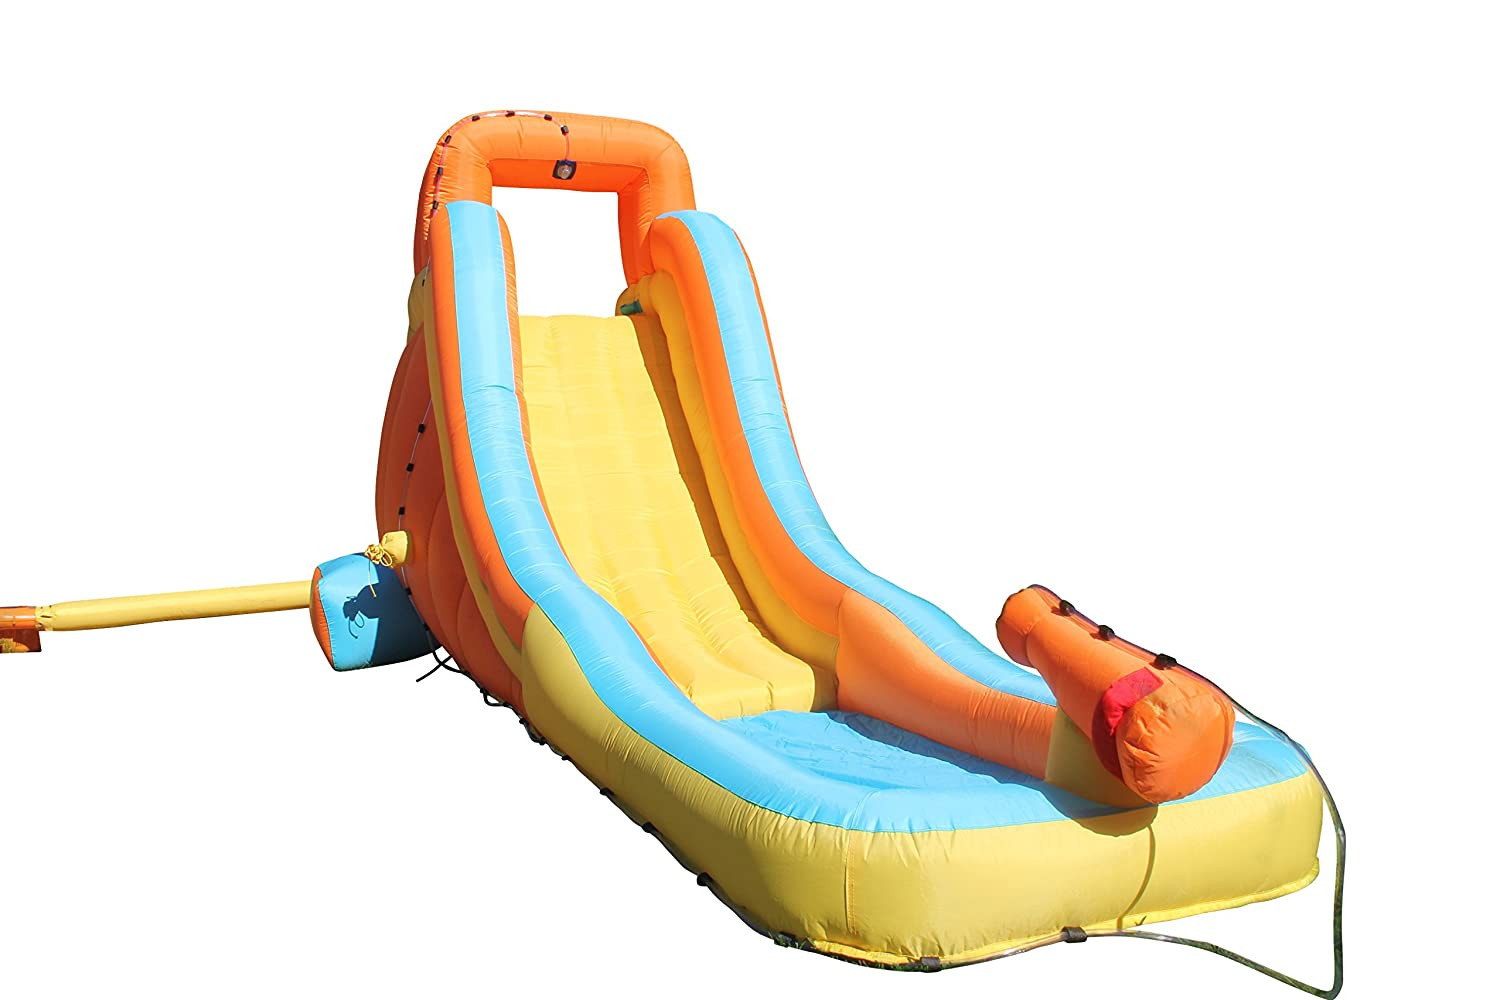 Top 7 Best Water Slide Pools Inflatable Reviews in 2020 4